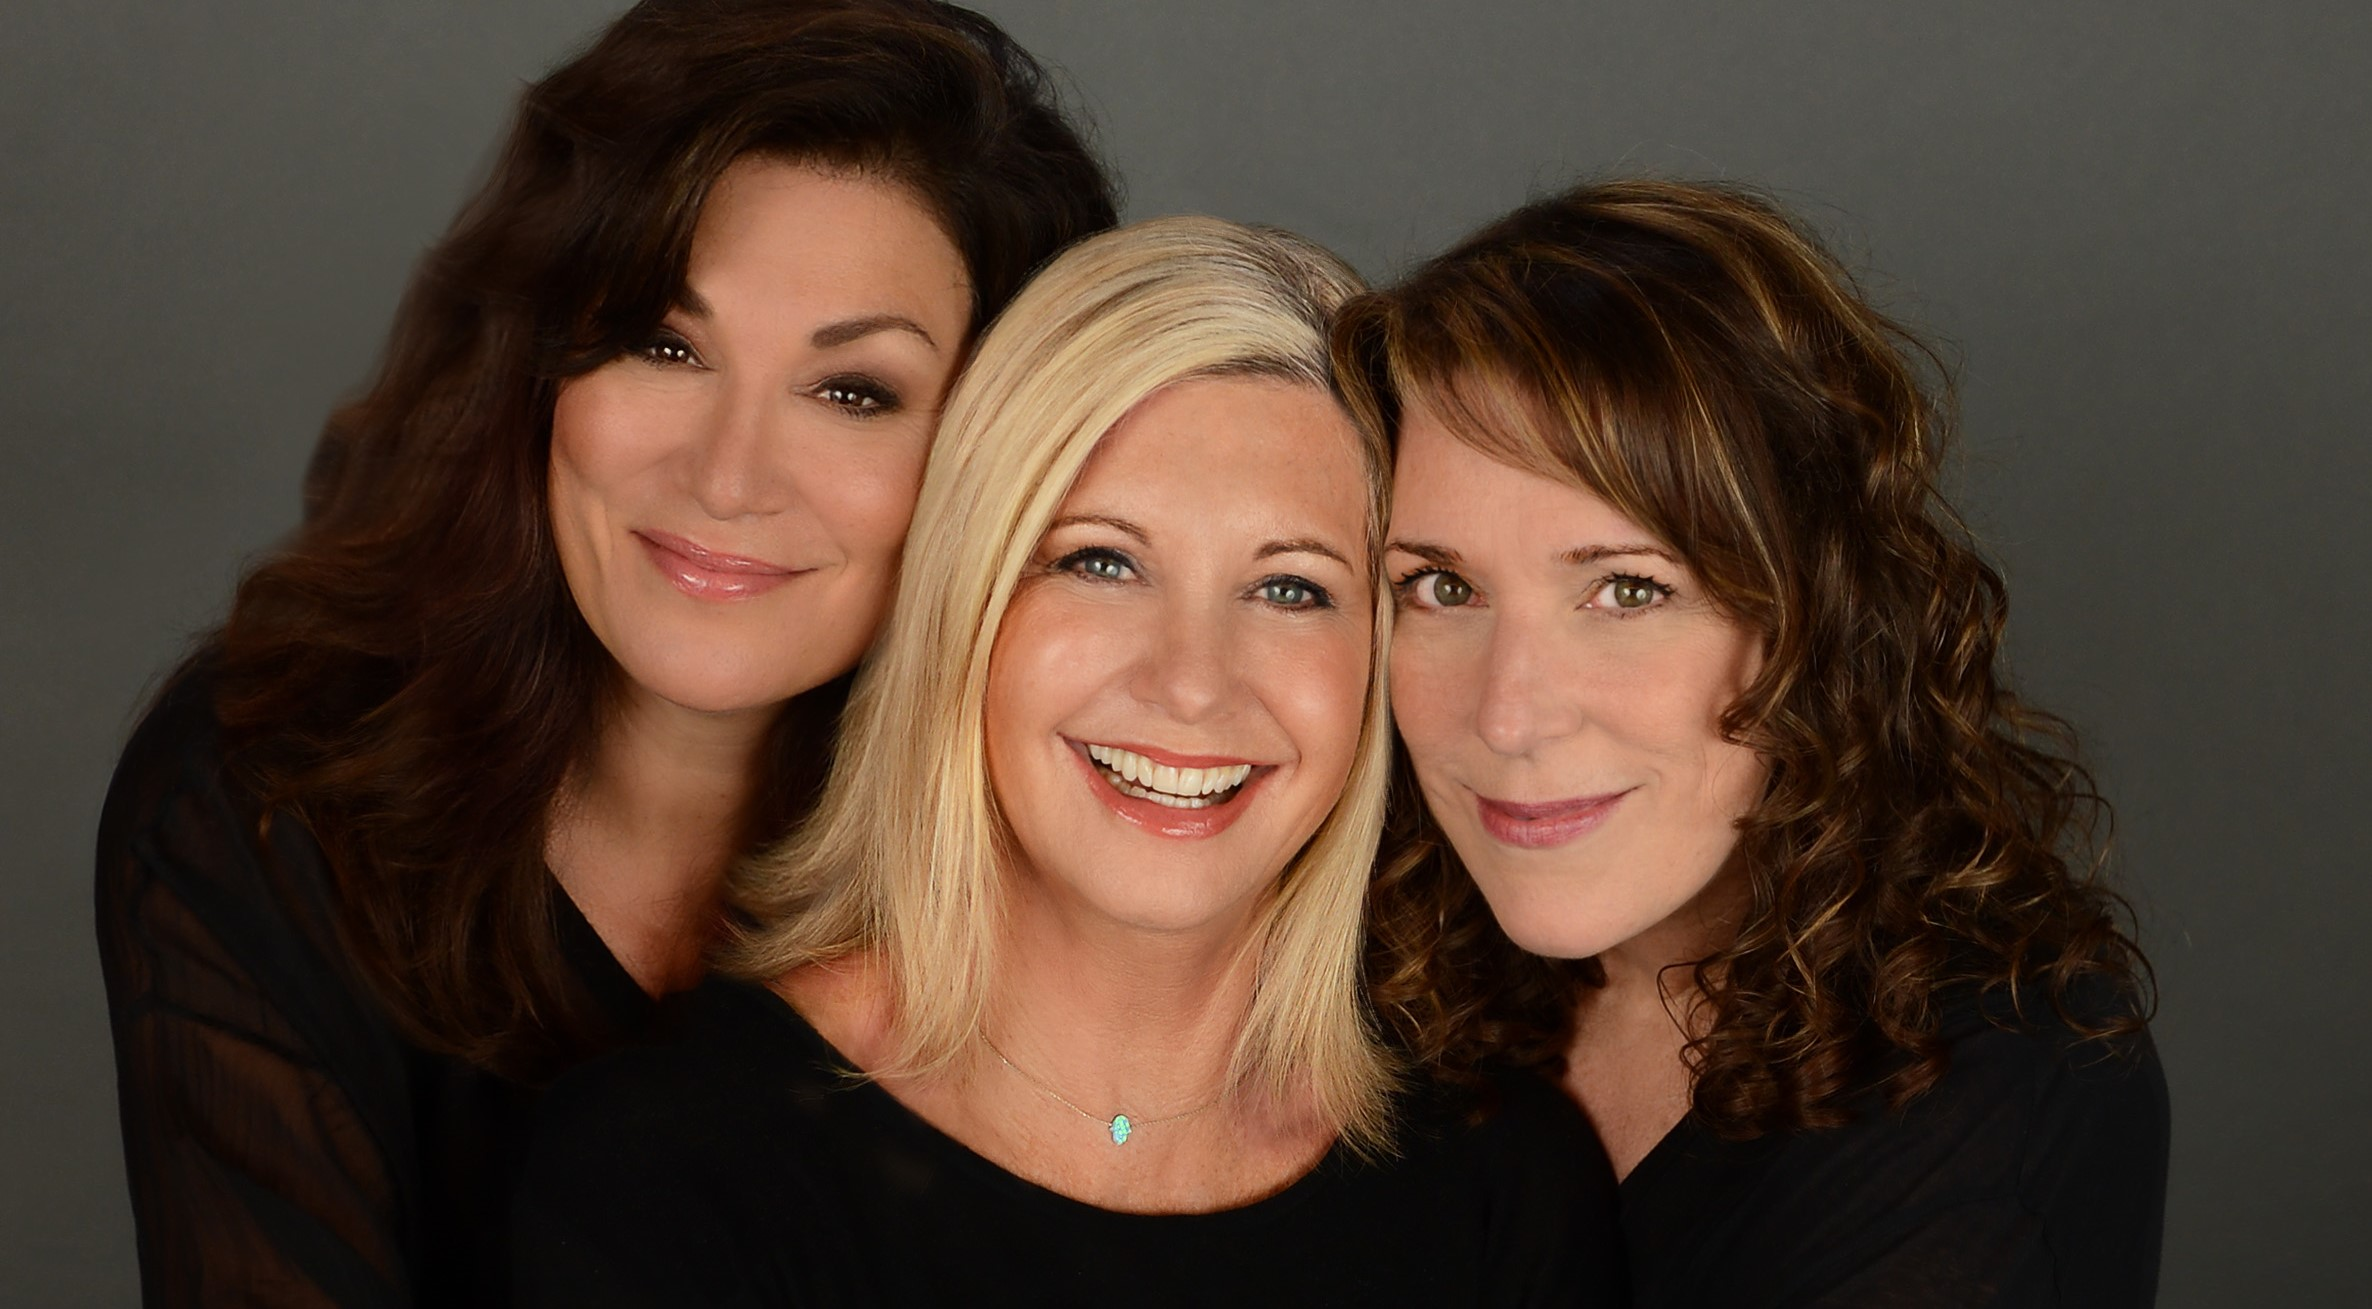 OLIVIA NEWTON-JOHN RELEASES 'LIV ON' TO GIVE HOPE TO OTHERS